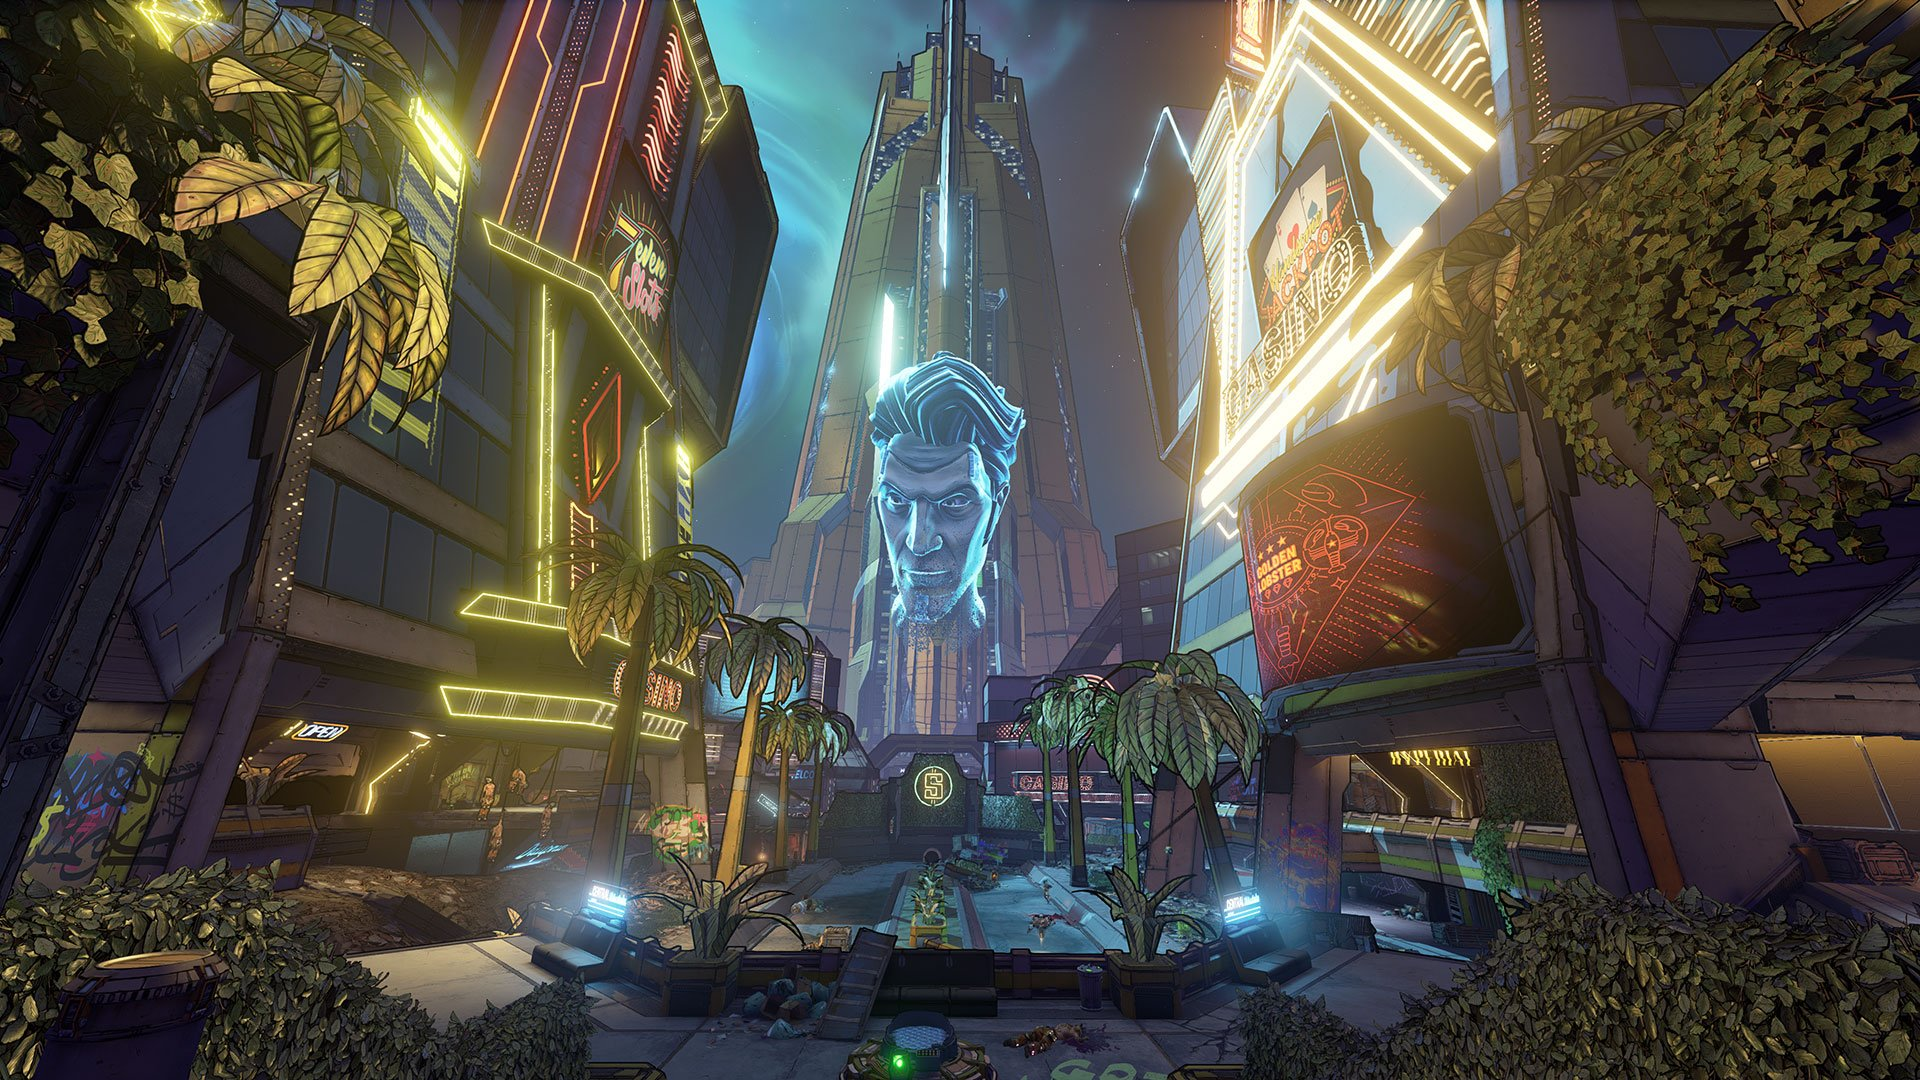 Borderlands 3 Raids The Handsome Jackpot In First Campaign